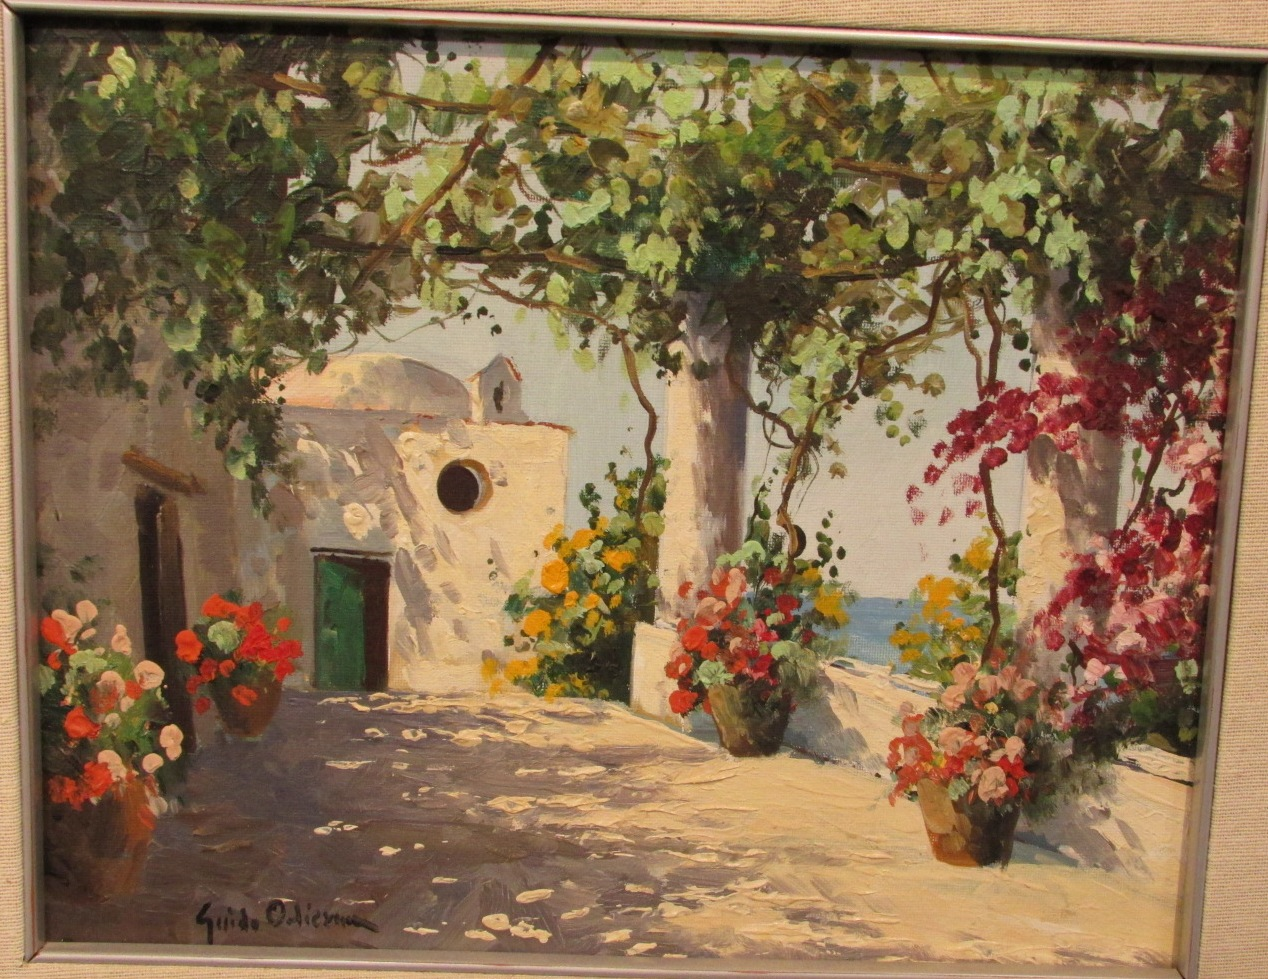 Lot 42 - Estate A Capri, oil on board, signed Guido Odierna lower left, (22cm x 28cm), framed, titled and